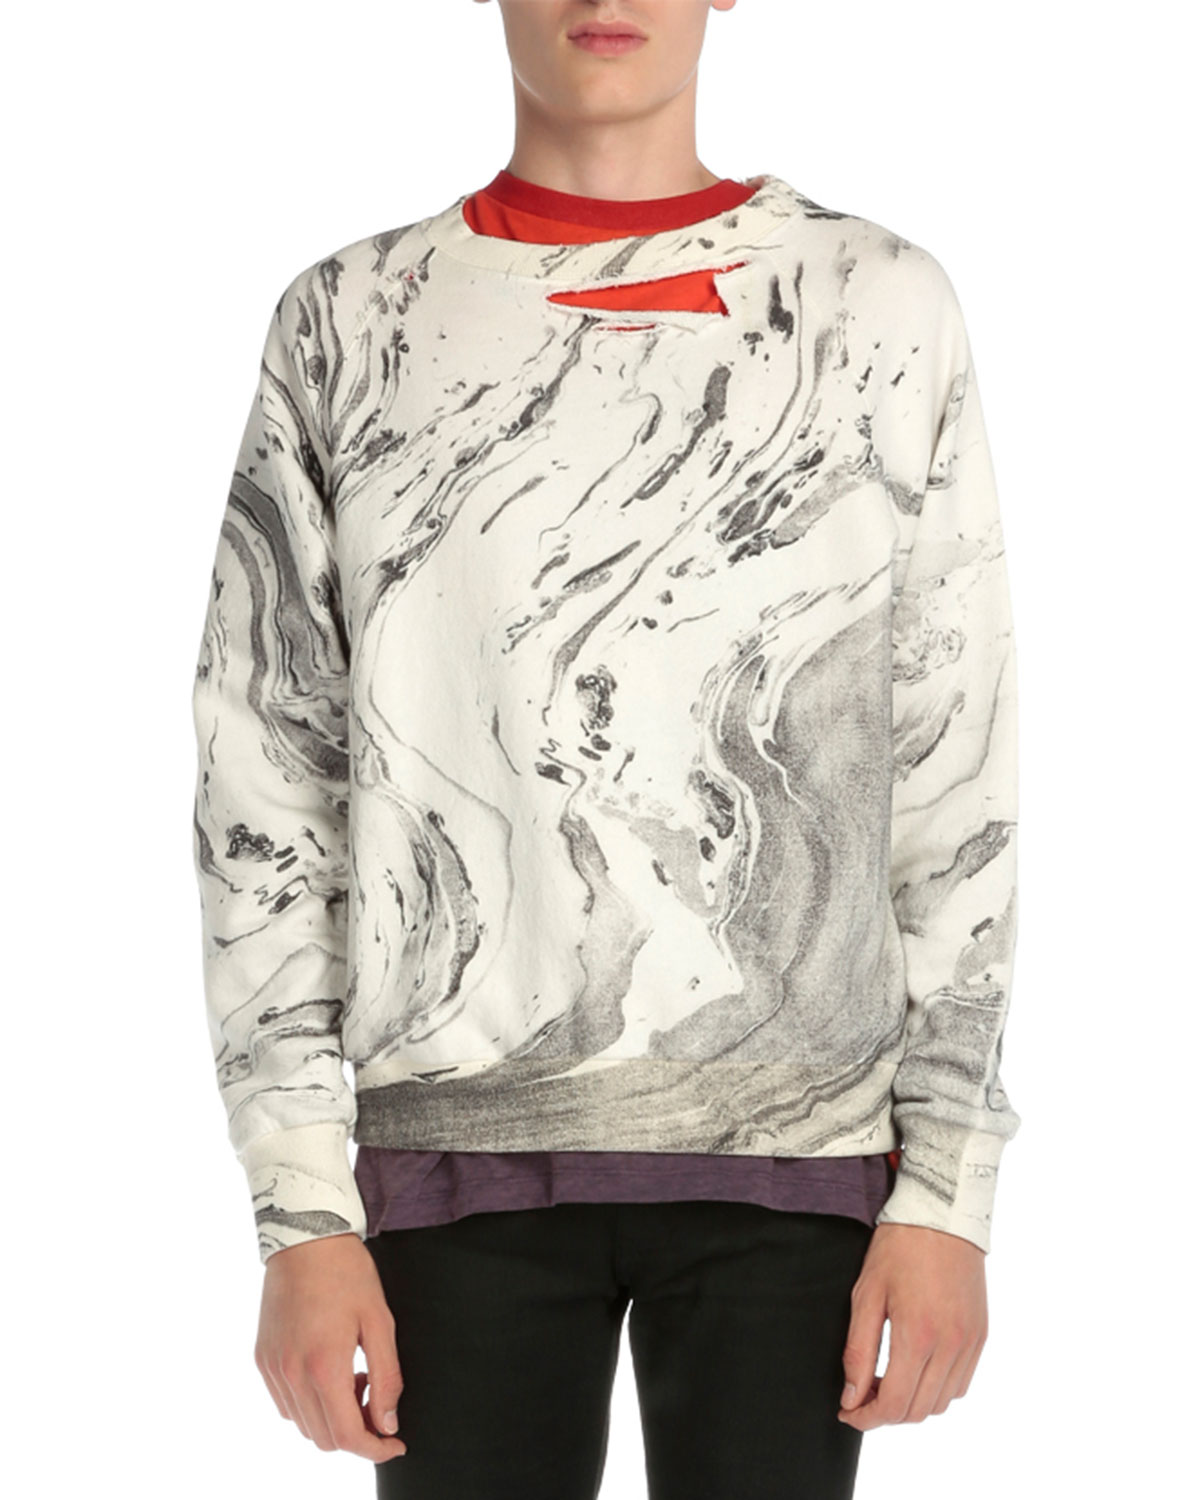 Ripped Tie-Dye Crewneck Sweatshirt, White